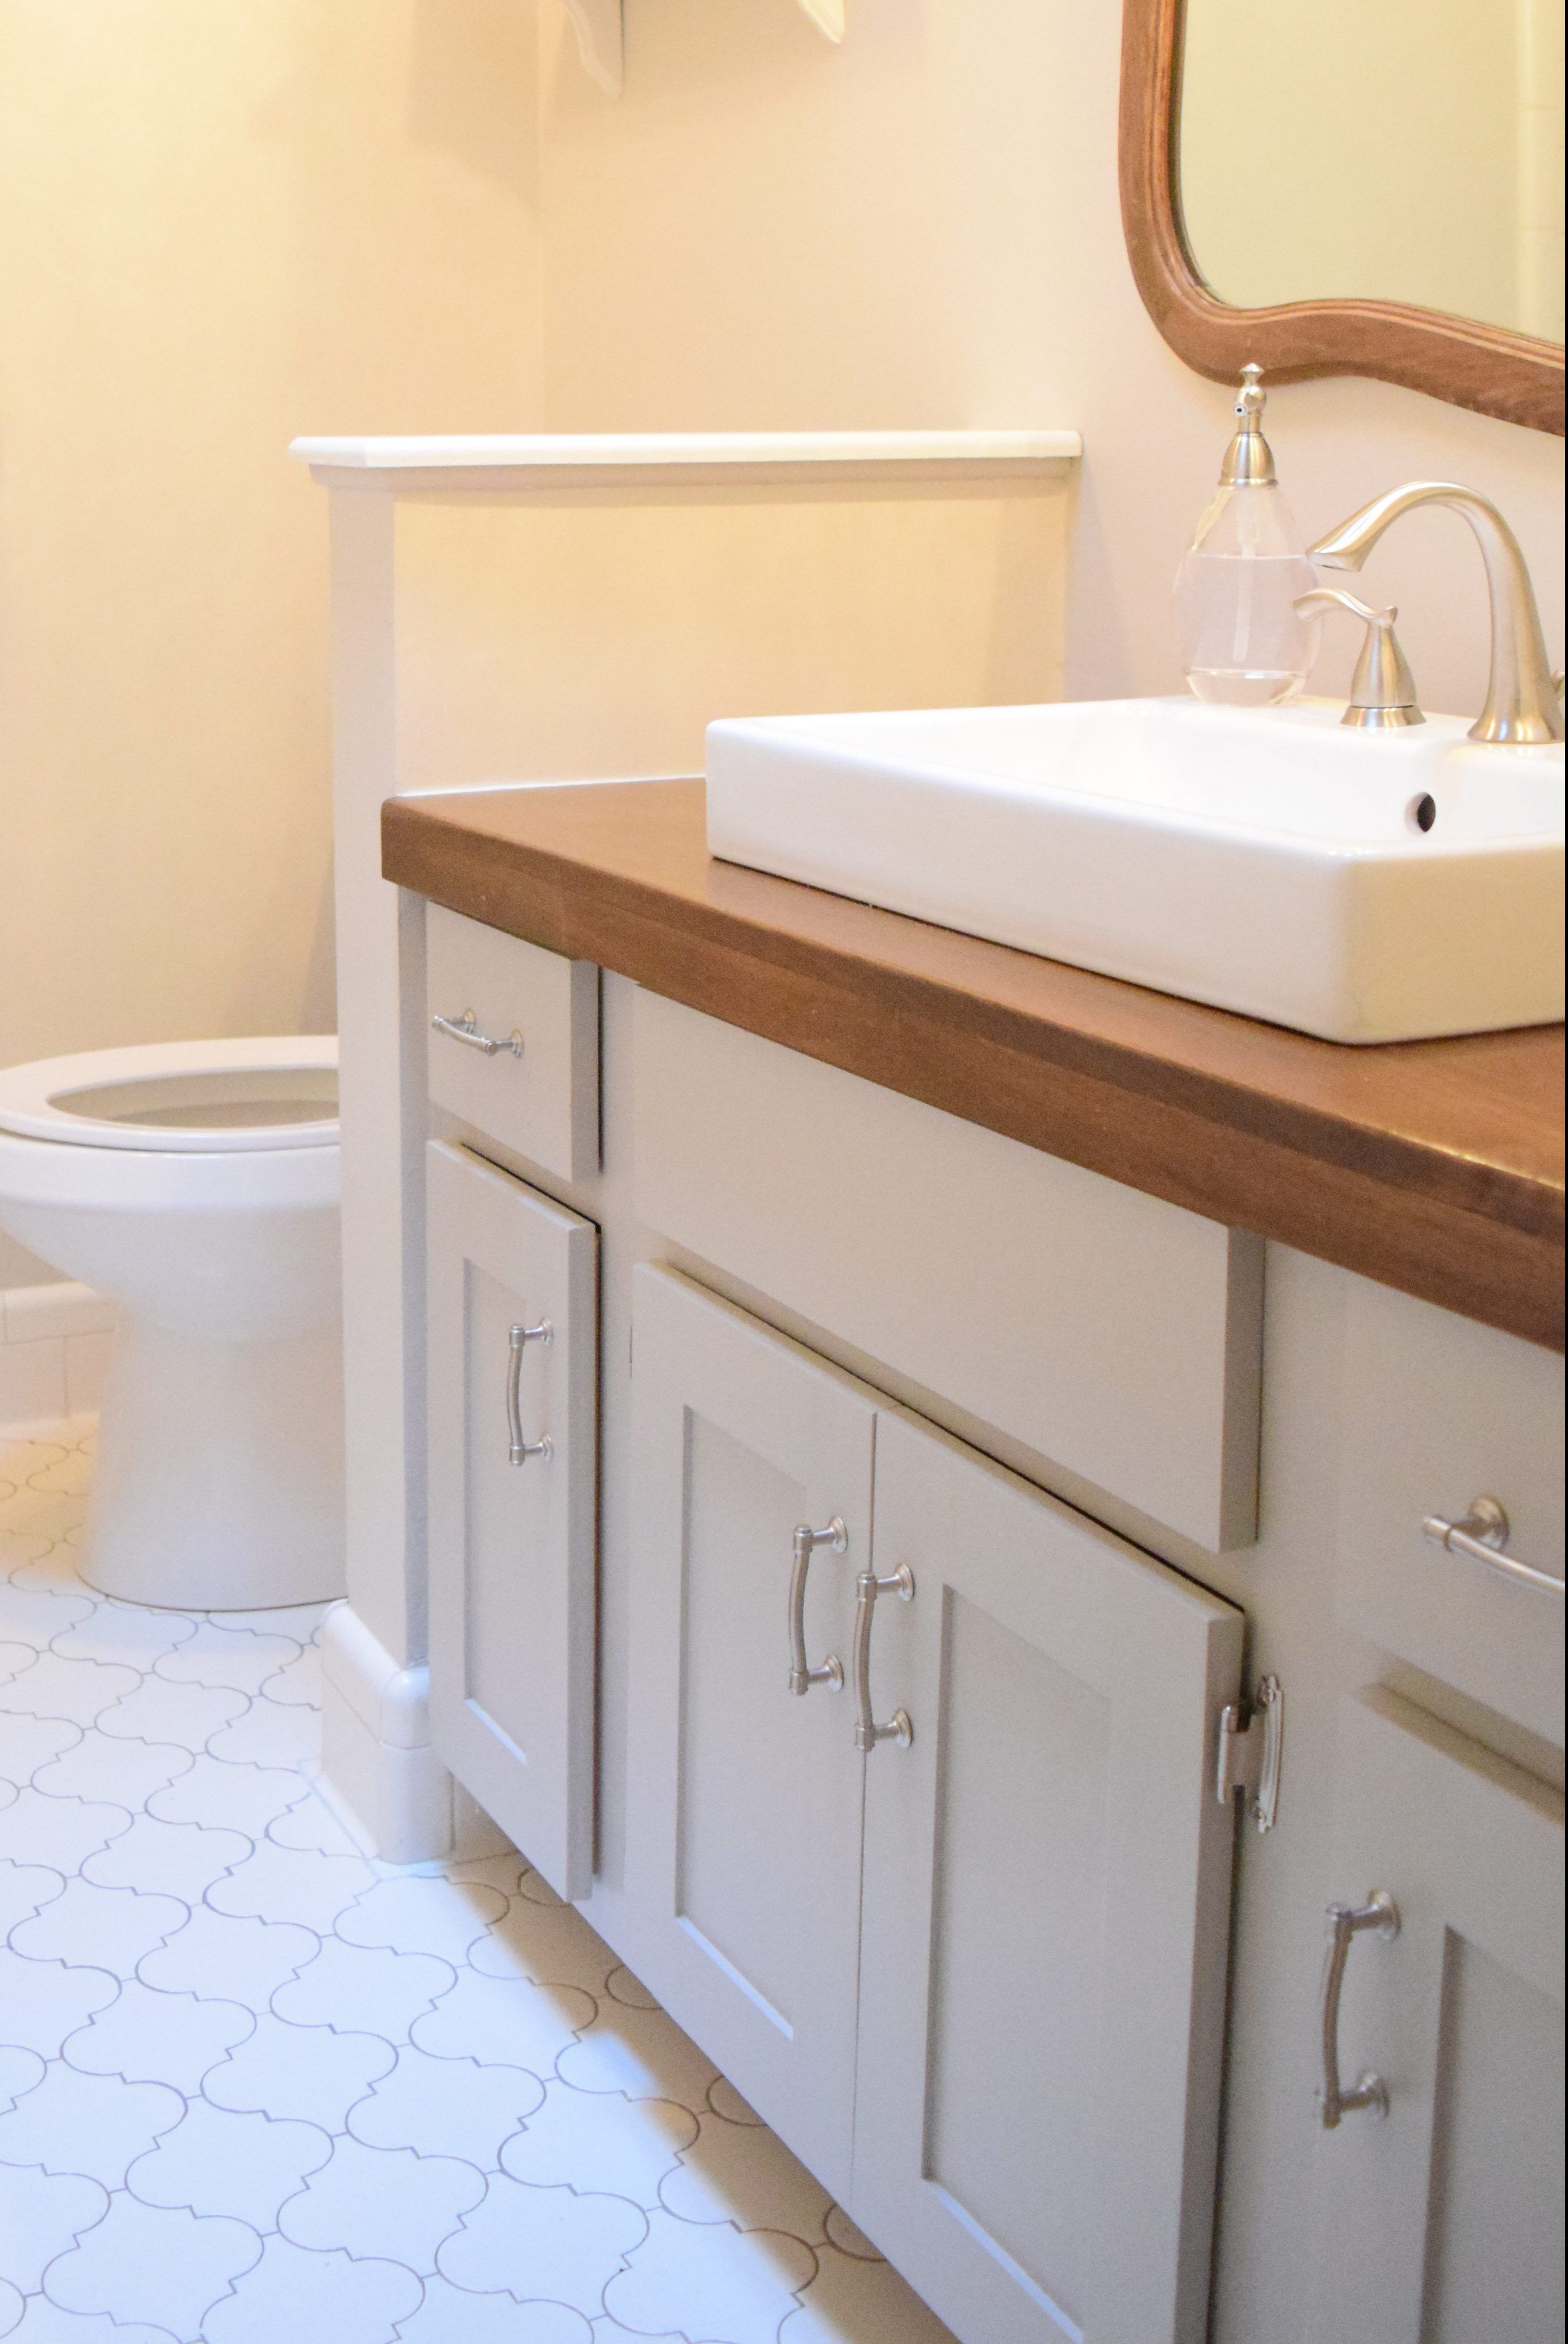 Cabinet Refacing How To Make Shaker